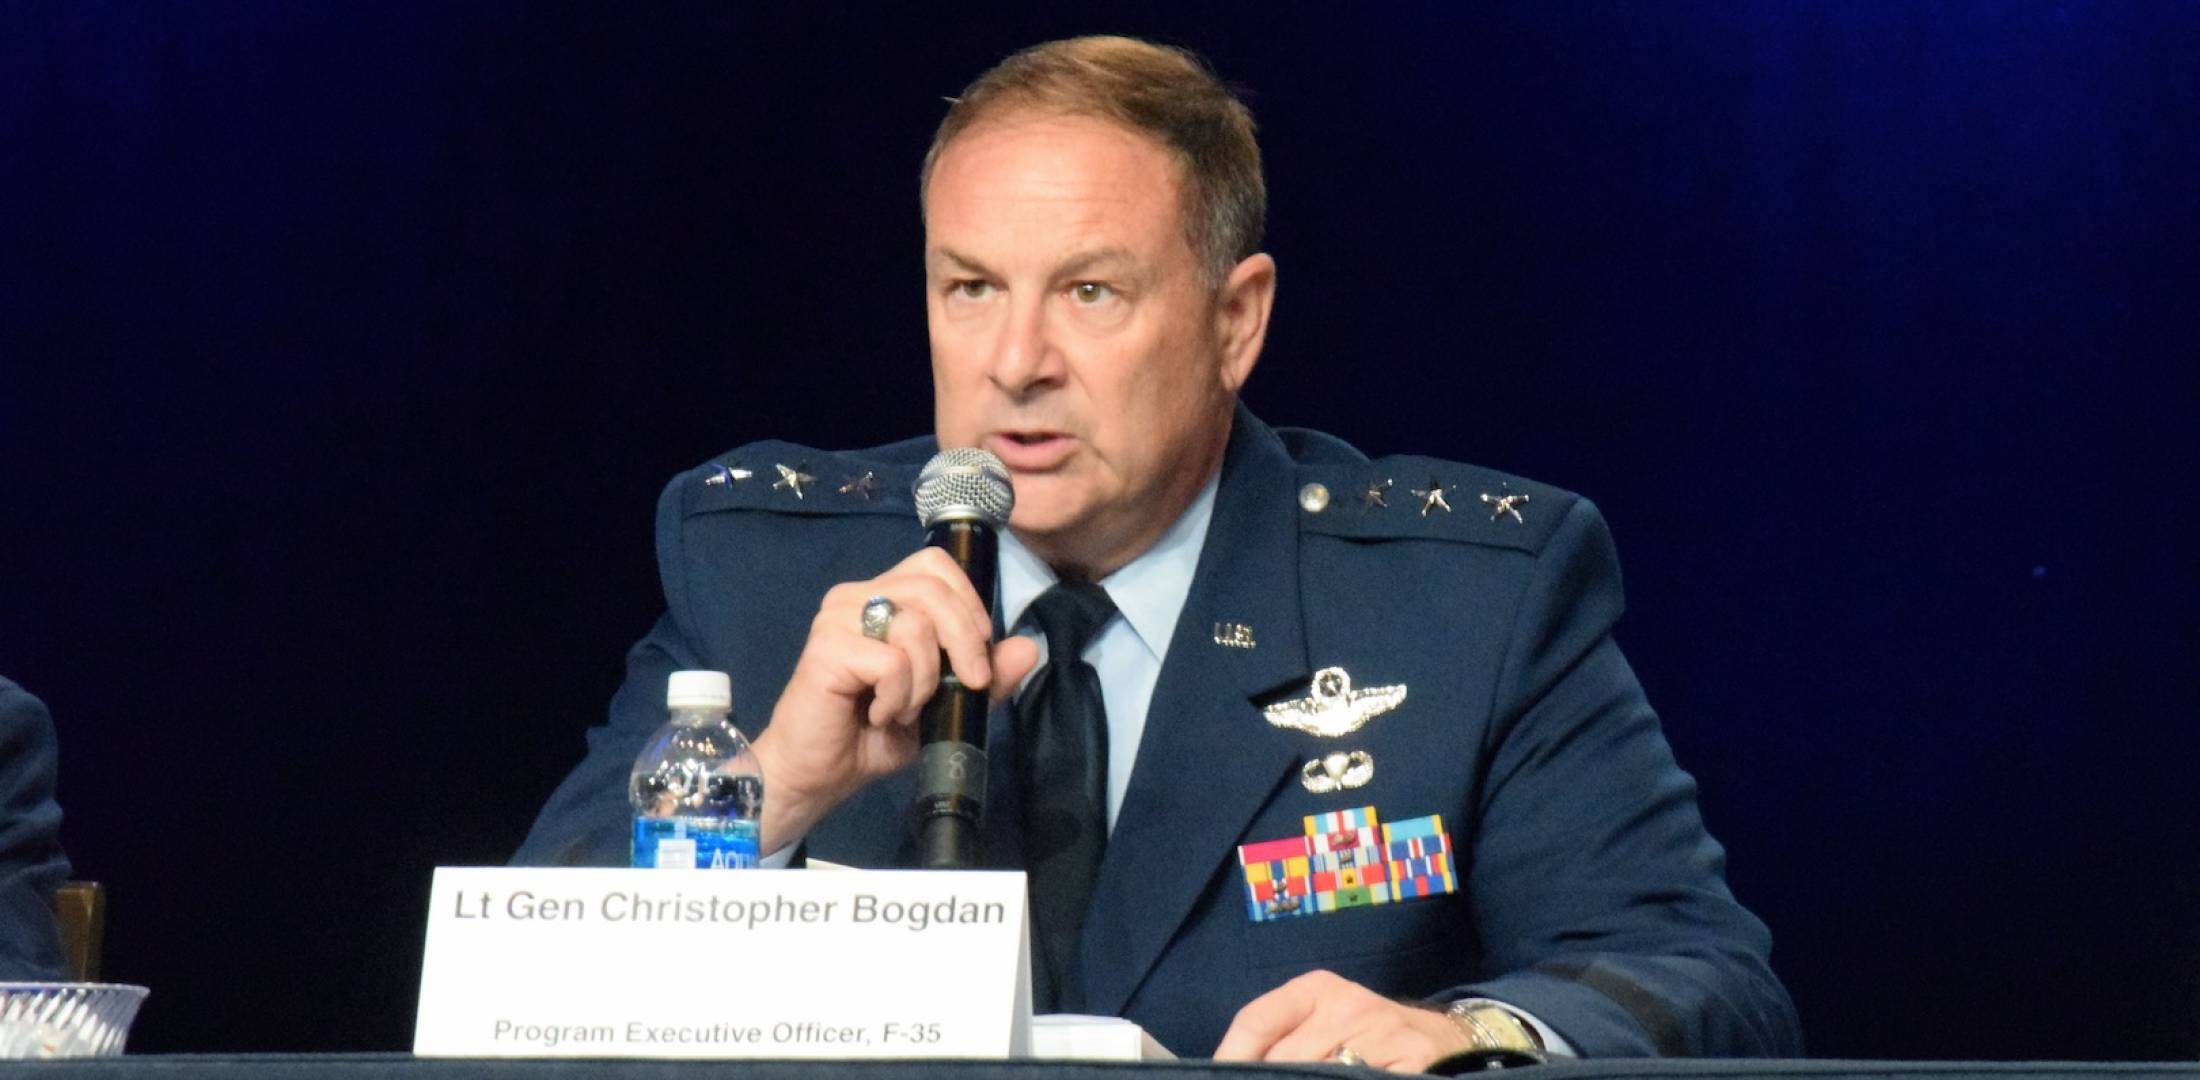 Air Force Lt. Gen. Christopher Bogdan